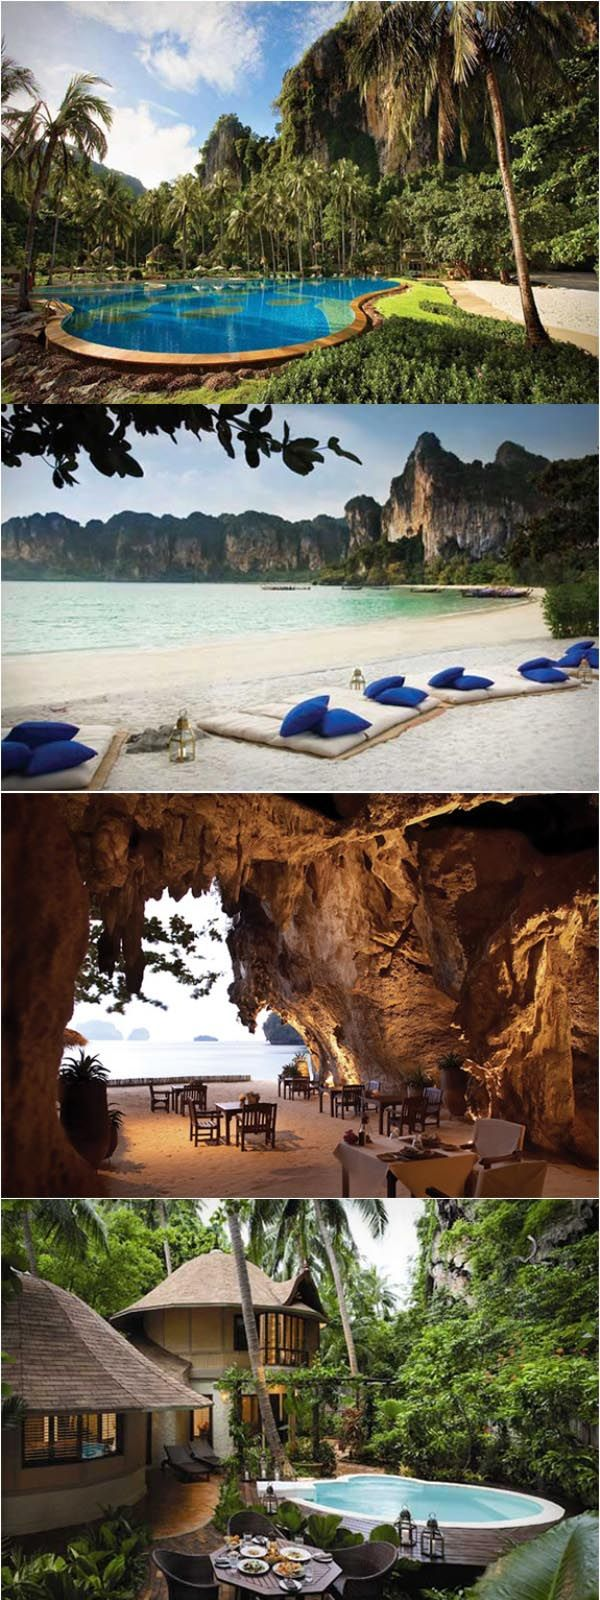 Rayavadee Resort, Krabi, Thailand | Make money with ebooks: http://justearnmoneyonline.com/kindle-money-mastery-review/